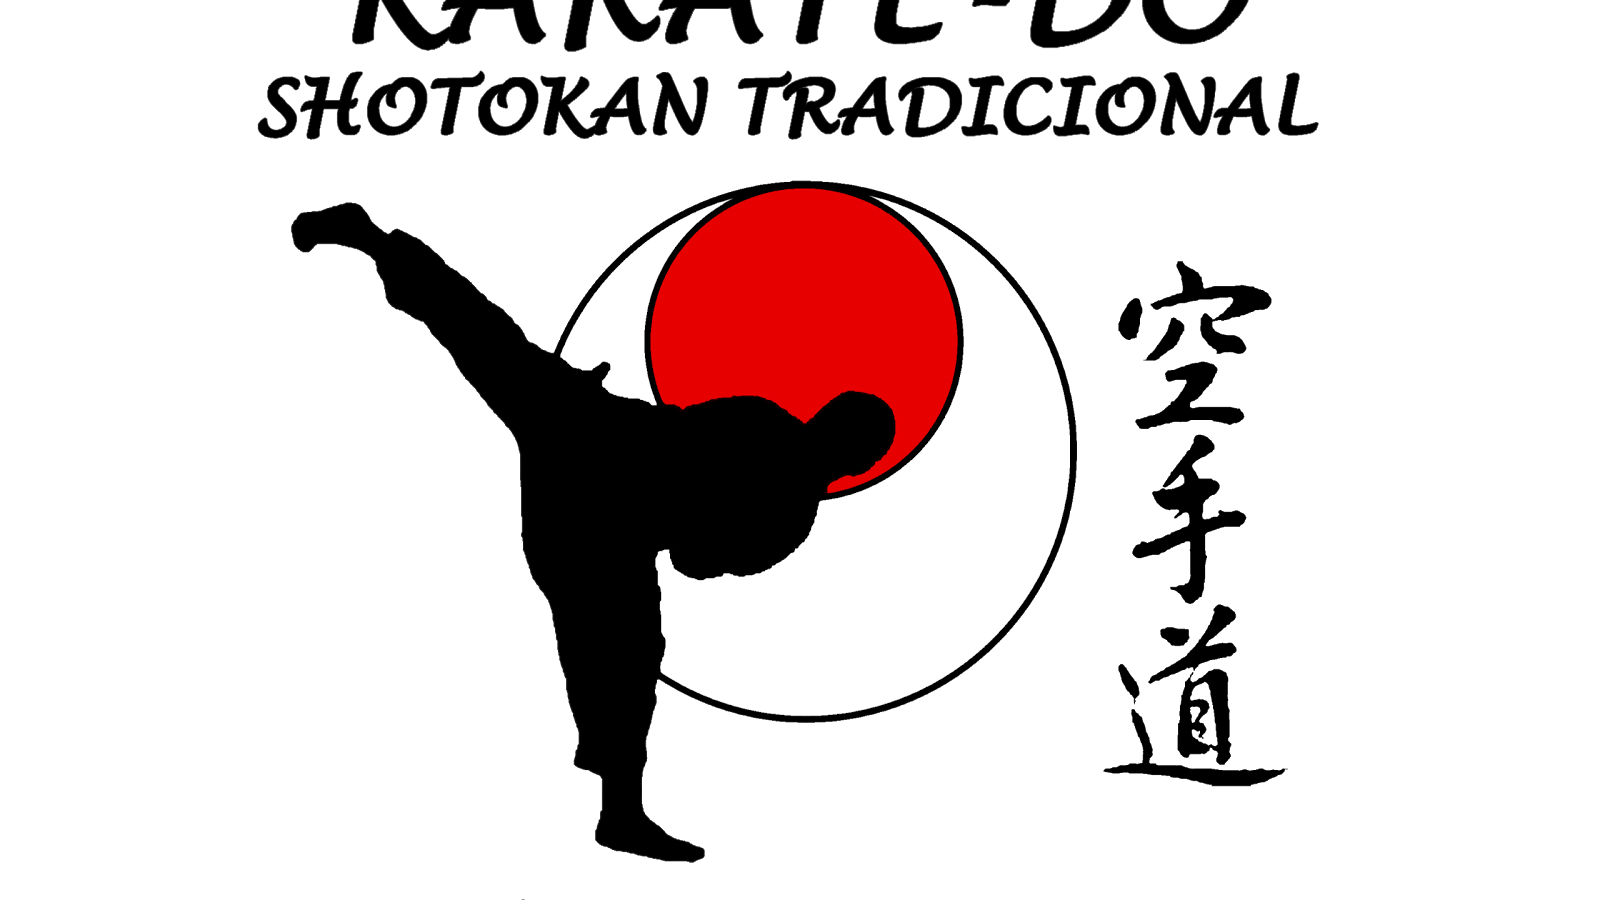 Free Download Shotokan Karate Do Ipad Wallpaper Hd Pictures